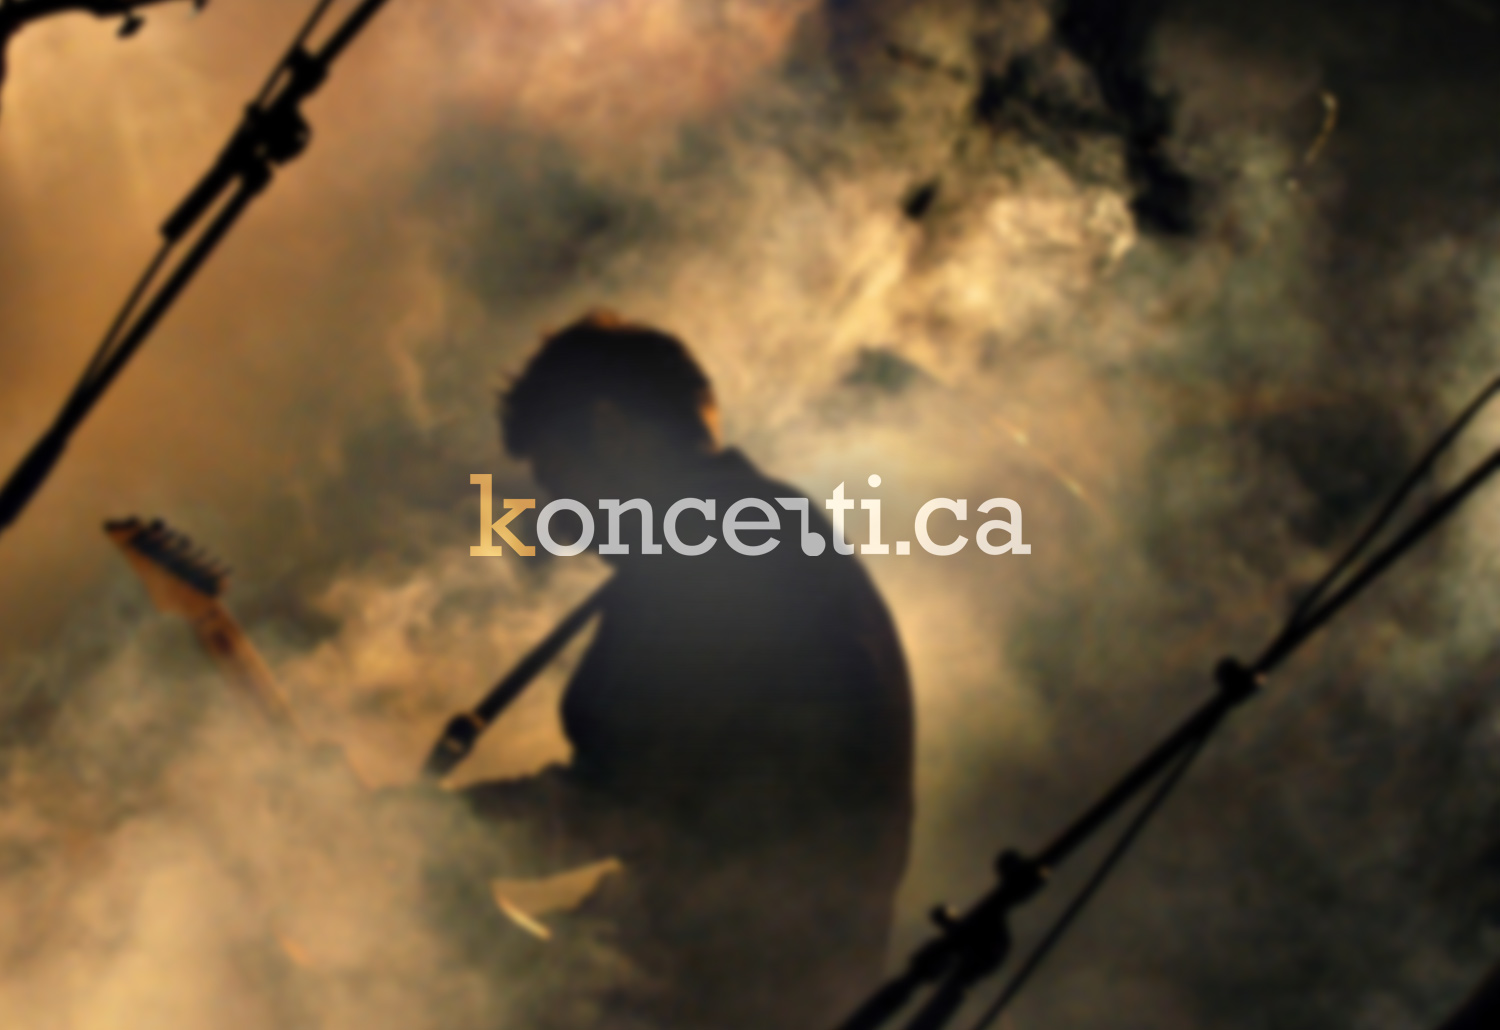 croatian concerts in canada logo design